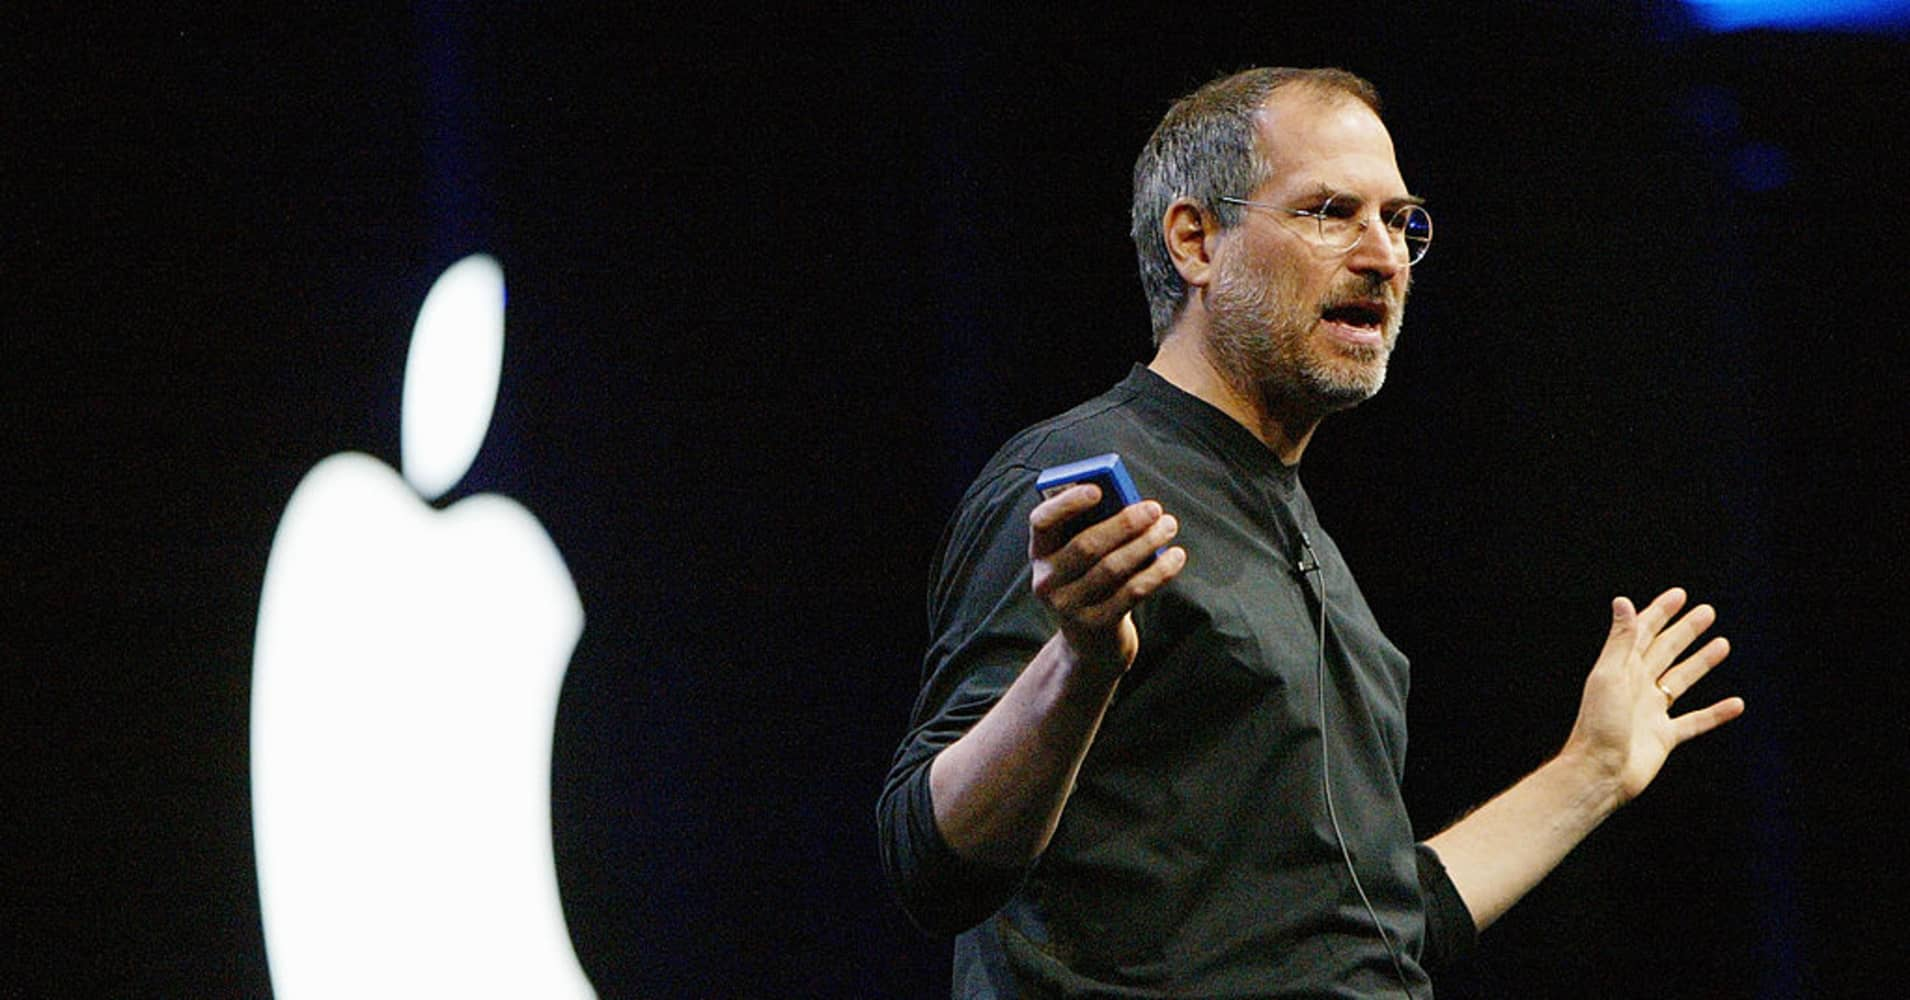 sucessfull international entrepreneur steve jobs Steve jobs: 6 tried-and-true business tips i regularly bring successful entrepreneurs into my classroom and the common attributes of these individuals are their stamina and willingness to do whatever was necessary to succeed 4.